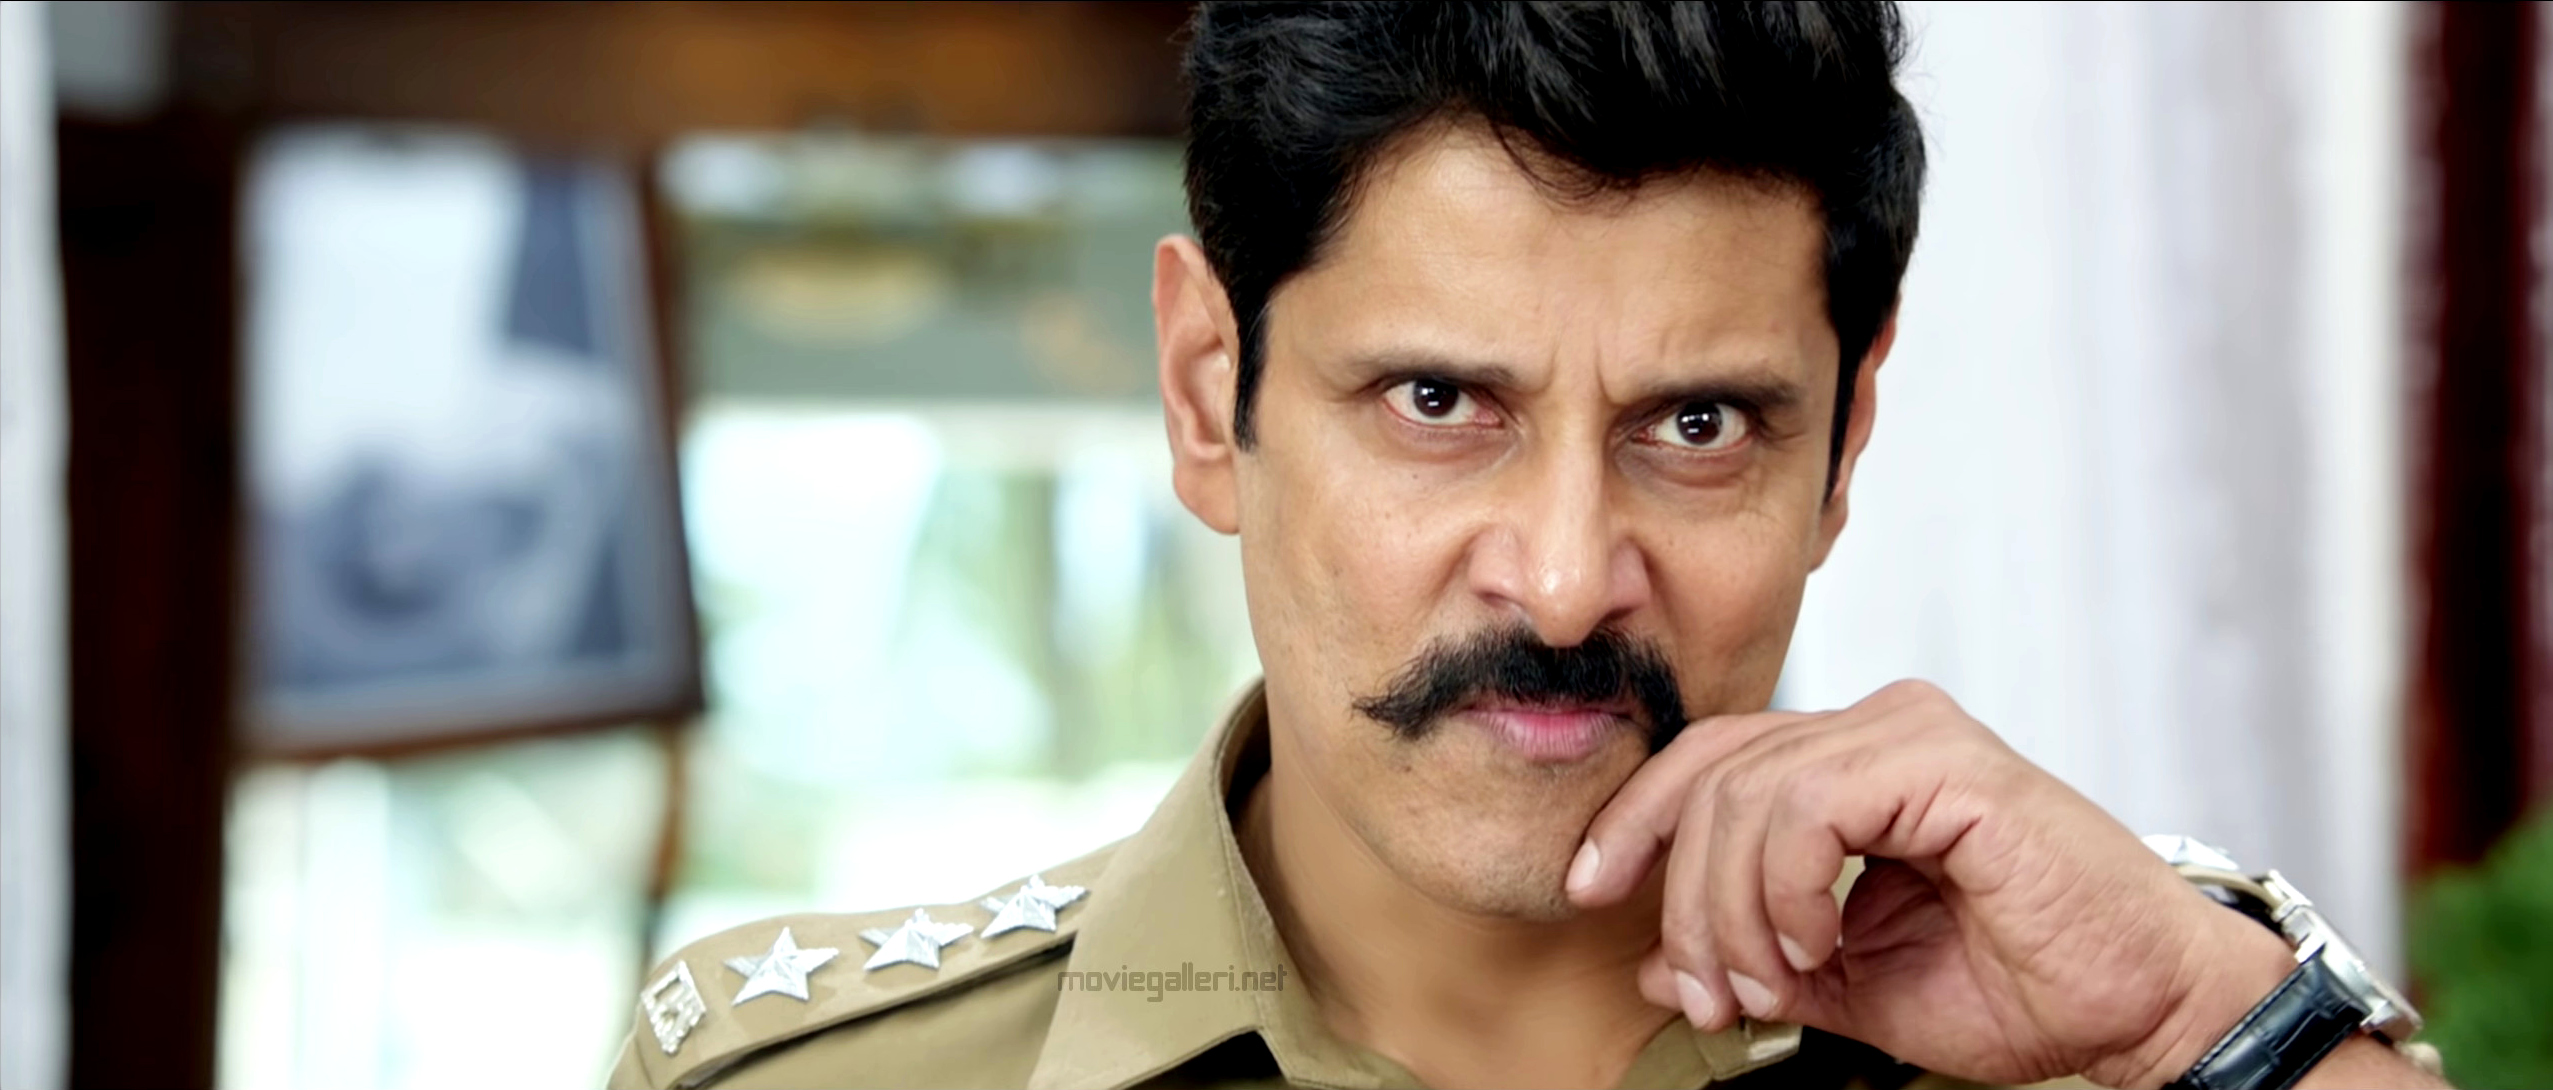 Chiyaan Vikram Saamy Square movie new trailer police officer storms social media